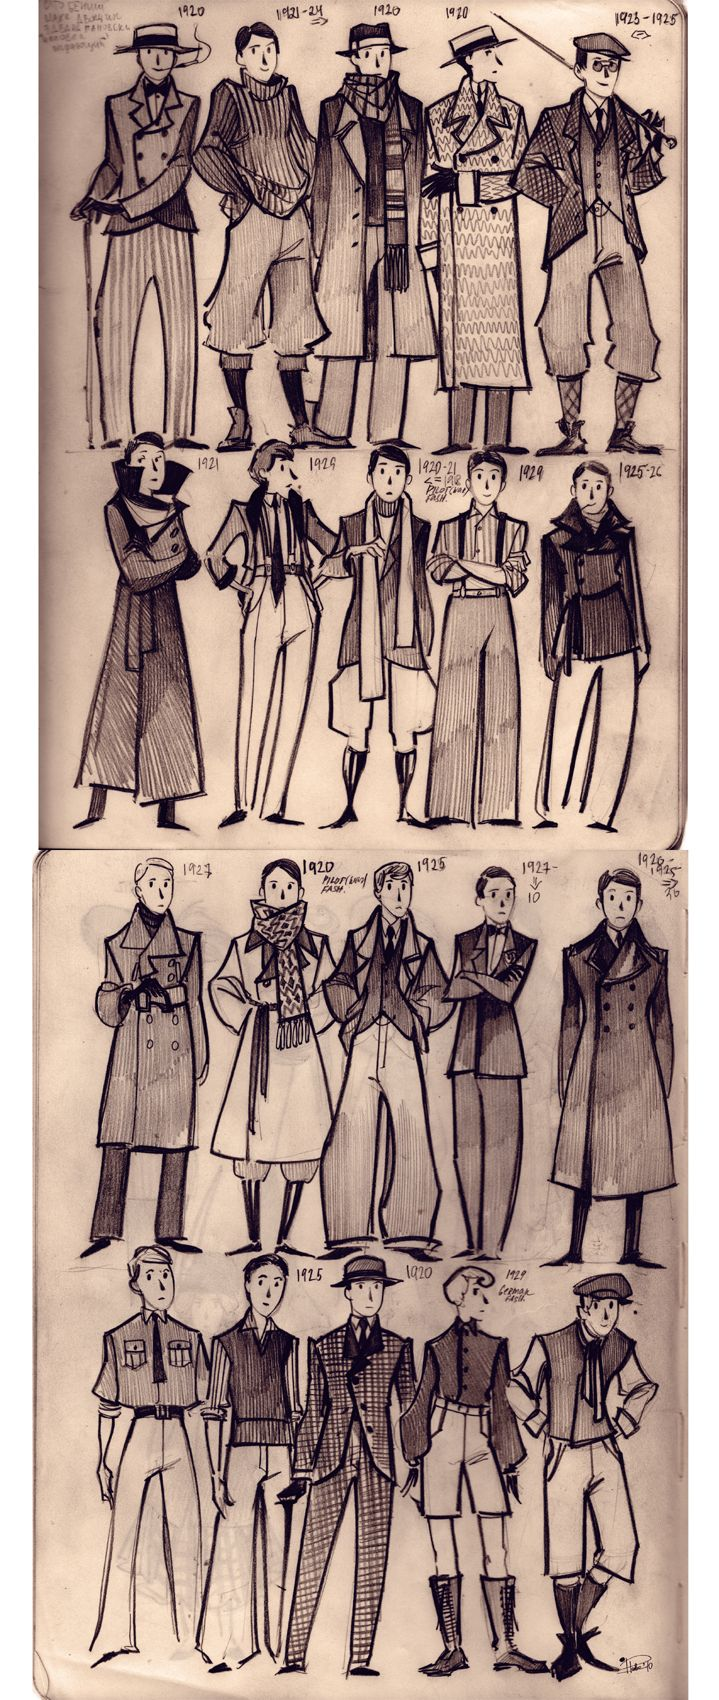 1920's MEN'S FASHION - often characterized by suit jackets and high waisted pants (The Twenties, Thirties, and WWII). I love all these, though the timeline goes past the 20s decade.